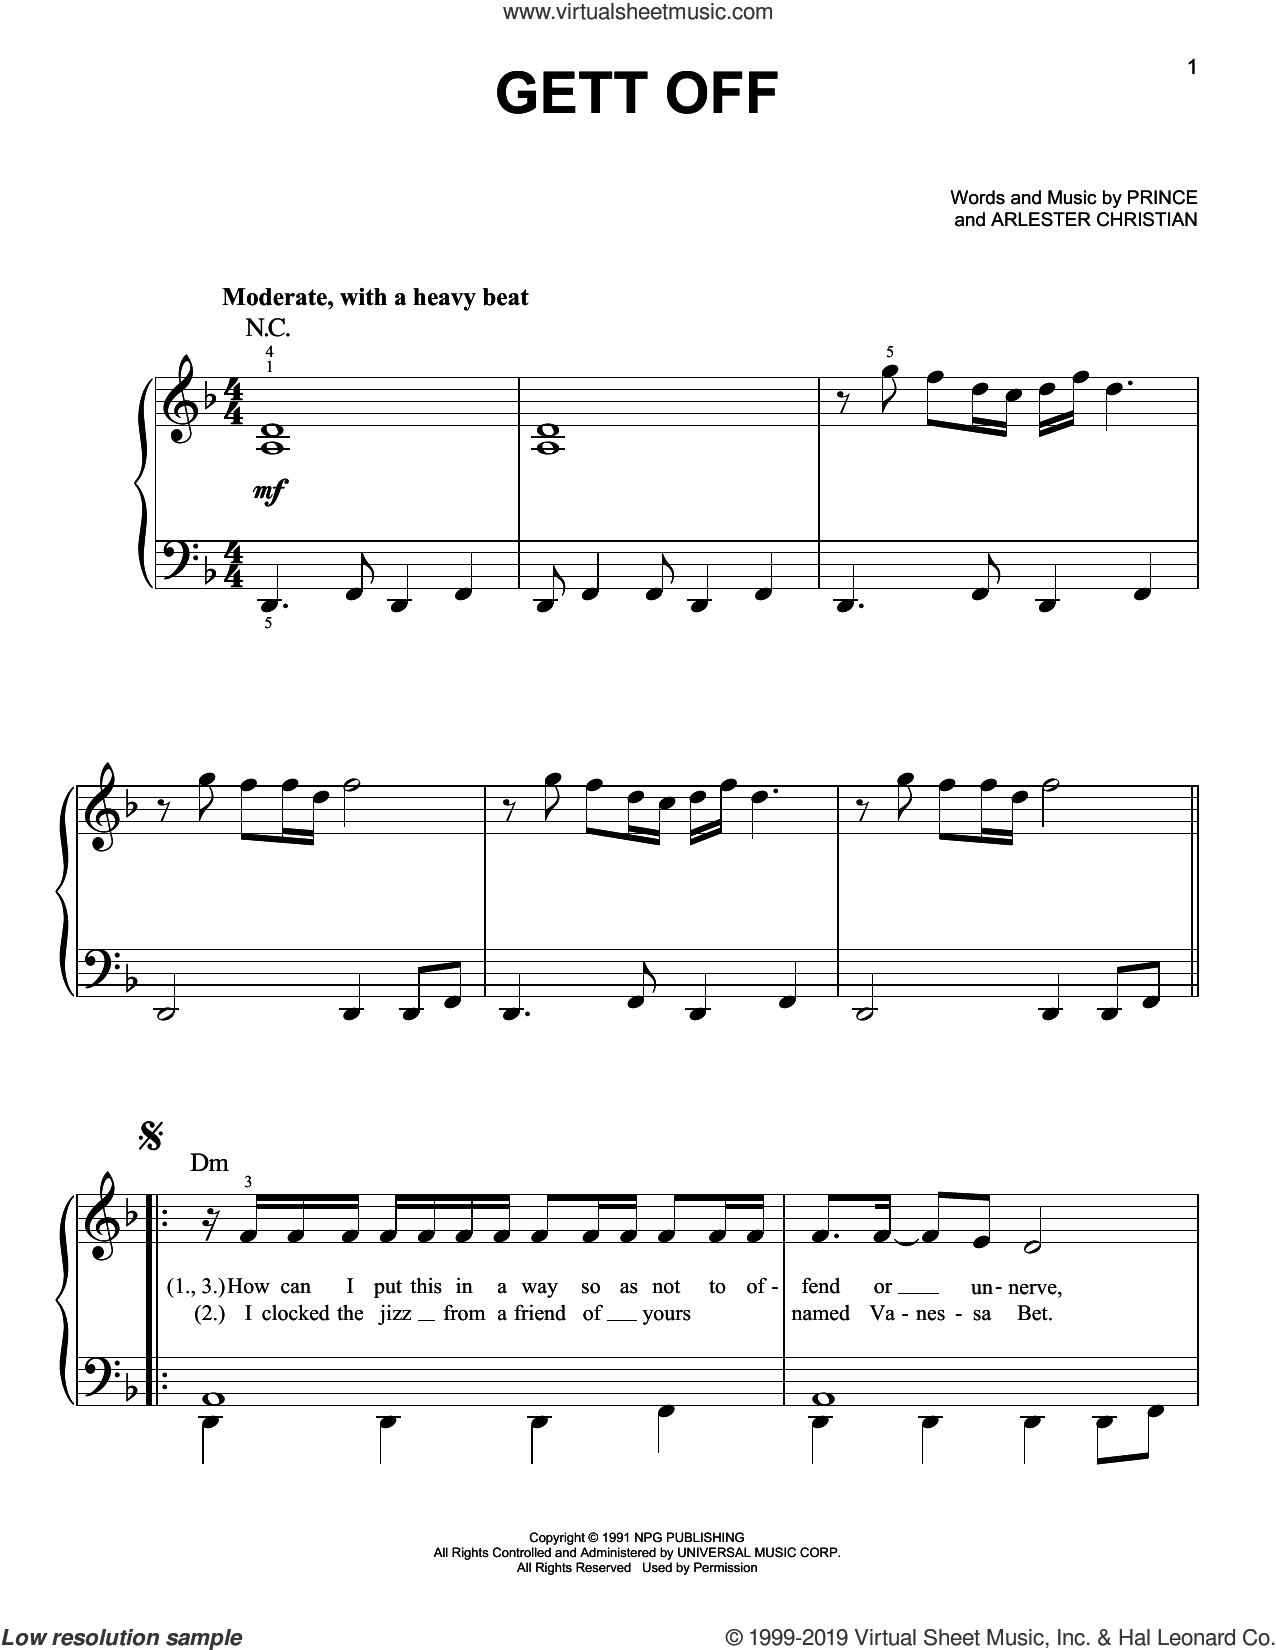 Gett Off sheet music for piano solo by Prince and Arlester Christian, easy skill level